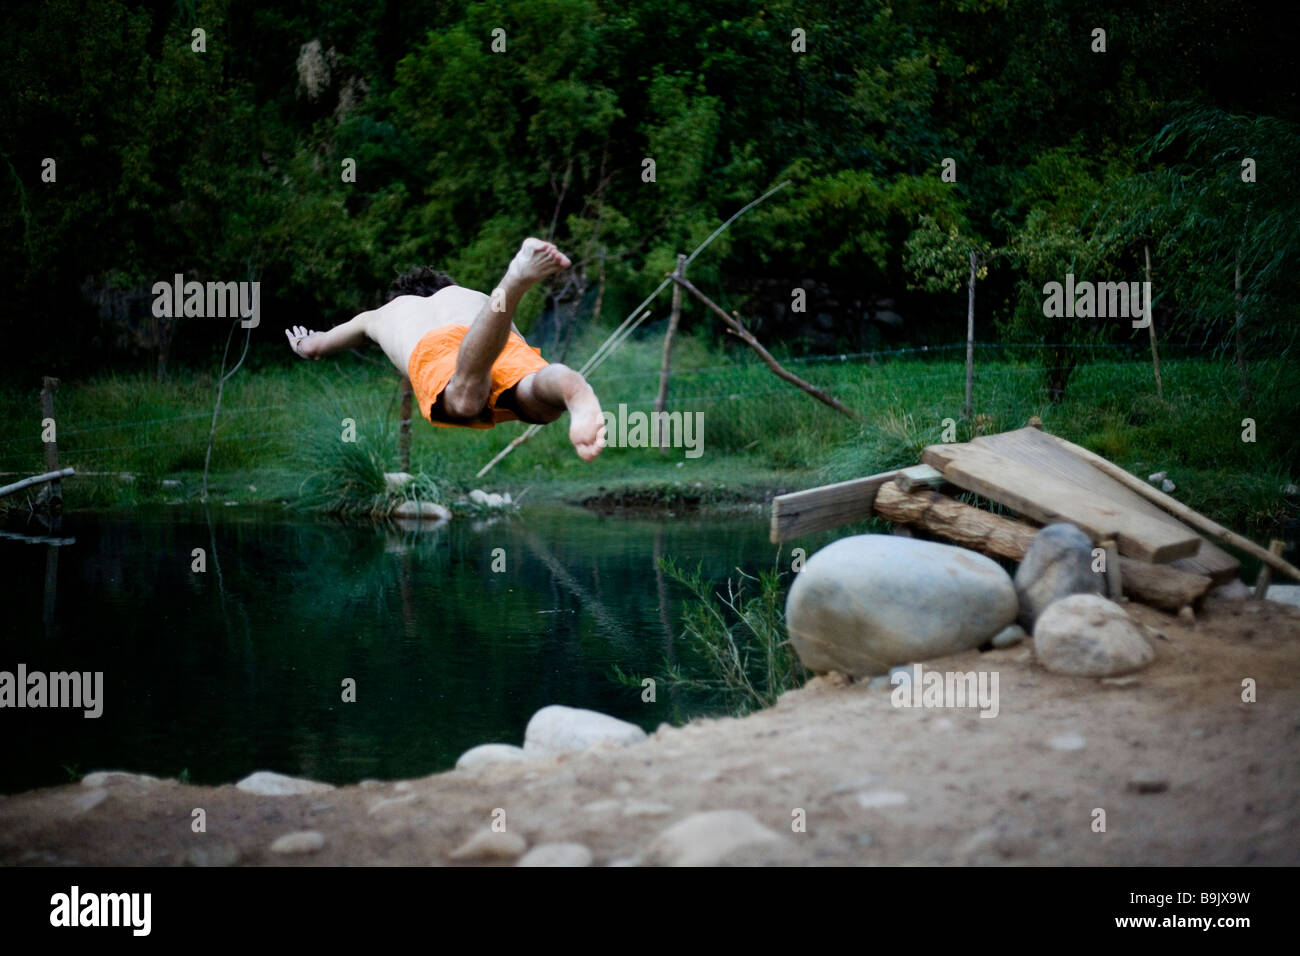 A young man dives into a small swimming hole. - Stock Image